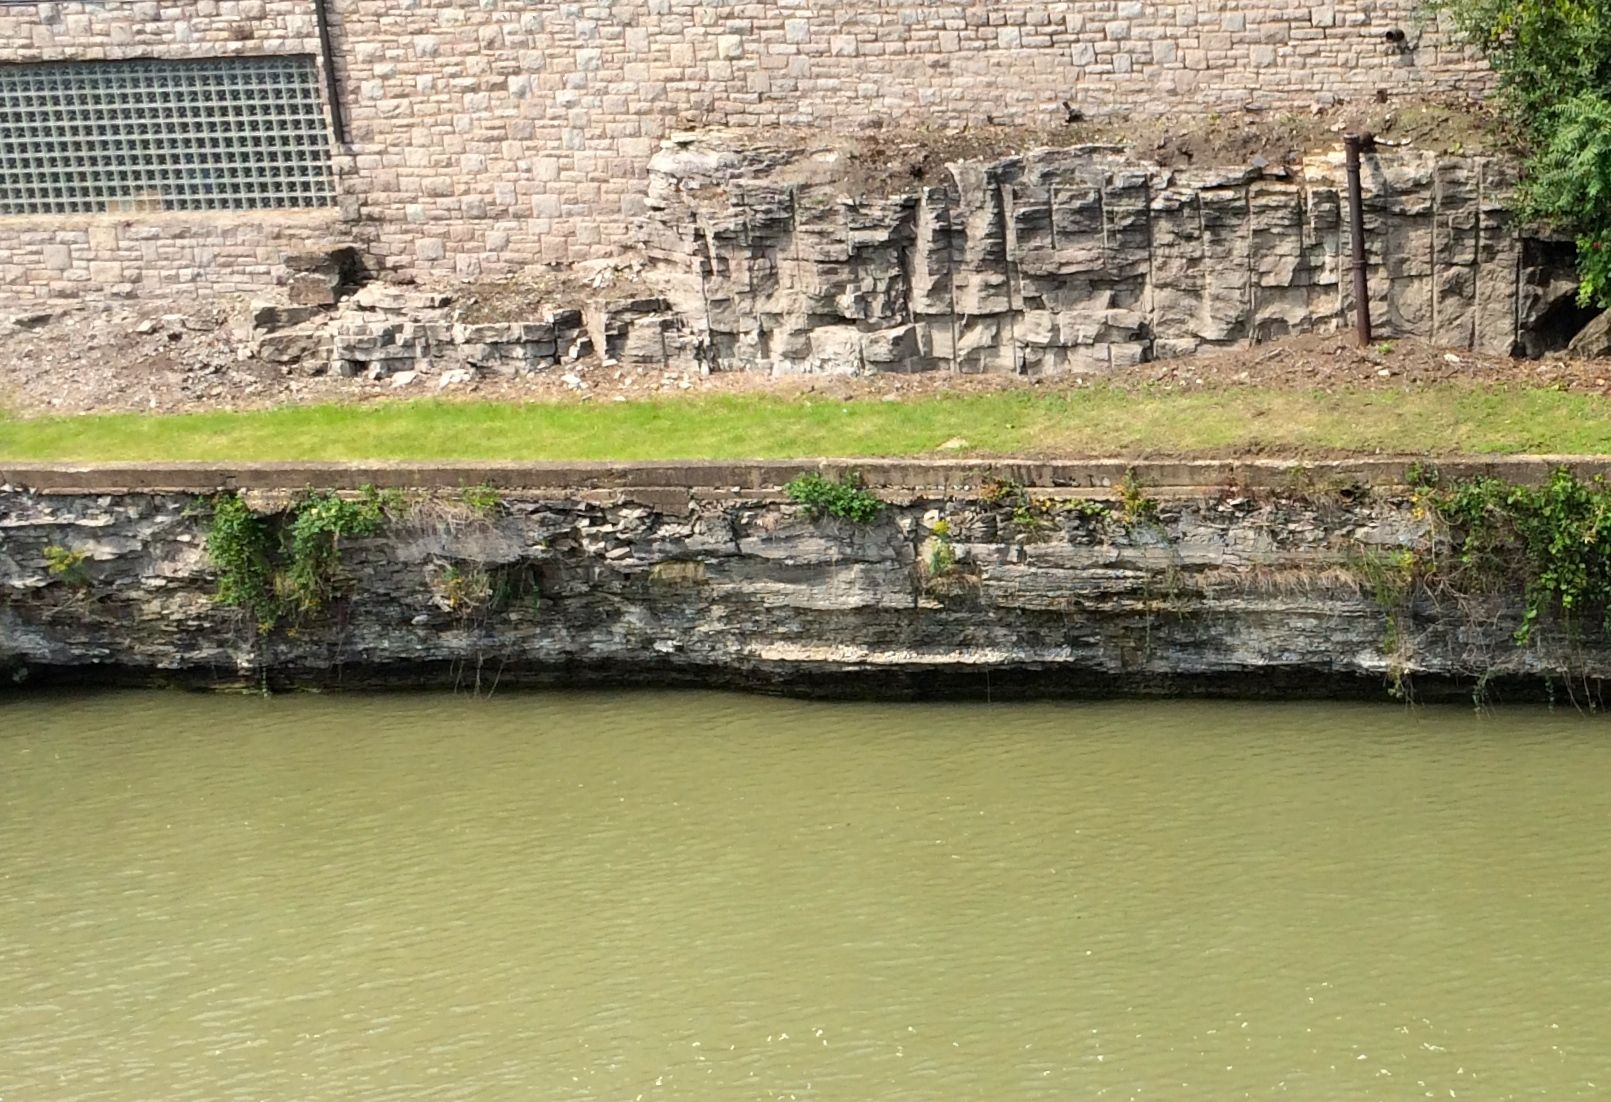 You can see the rocks they had to work with on the side of the canal.